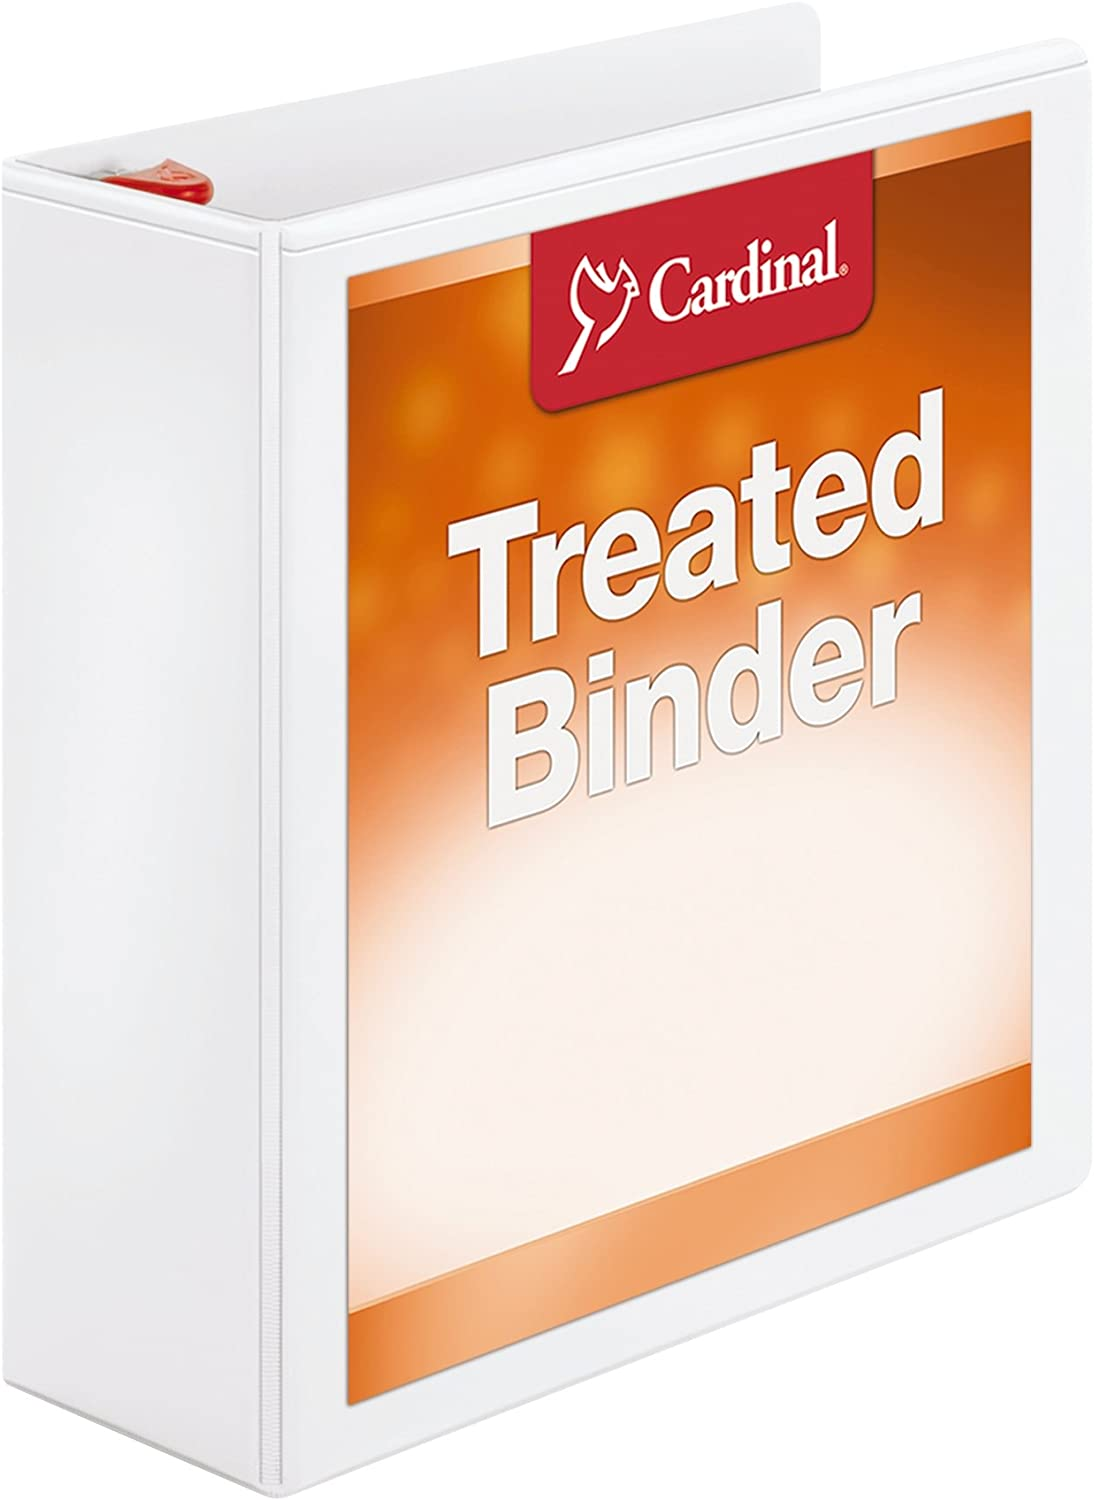 Cardinal 3 Ring Binder, 3 Inch Treated Binder, Locking Slant-D Rings, Customizable ClearVue Covers, Holds 725 Sheets, White